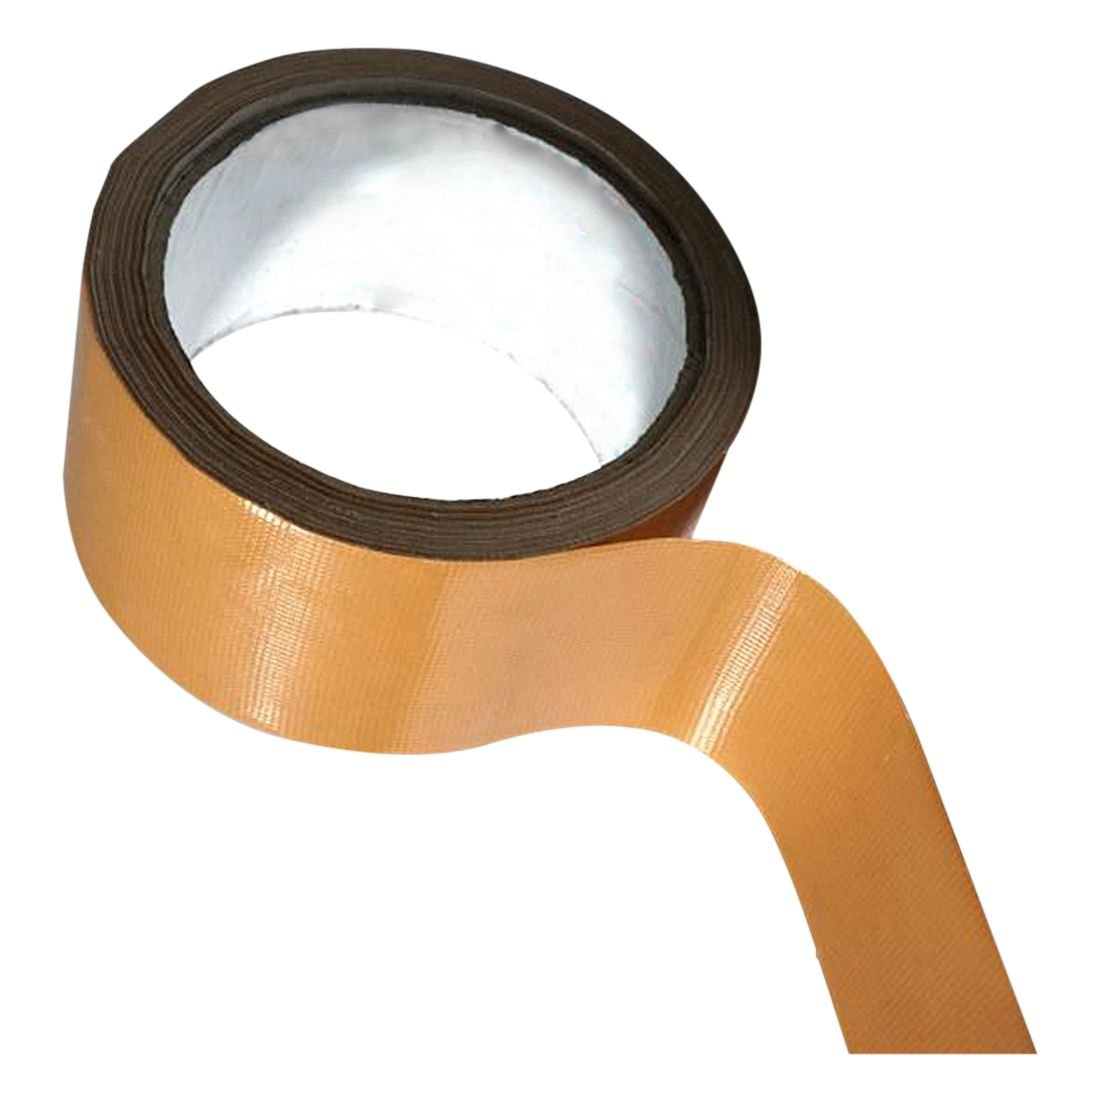 SODIAL(R) Hot melt adhesive Tape Pipeline Waterproof Tape 50mm50m, Coffee by SODIAL(R) (Image #2)